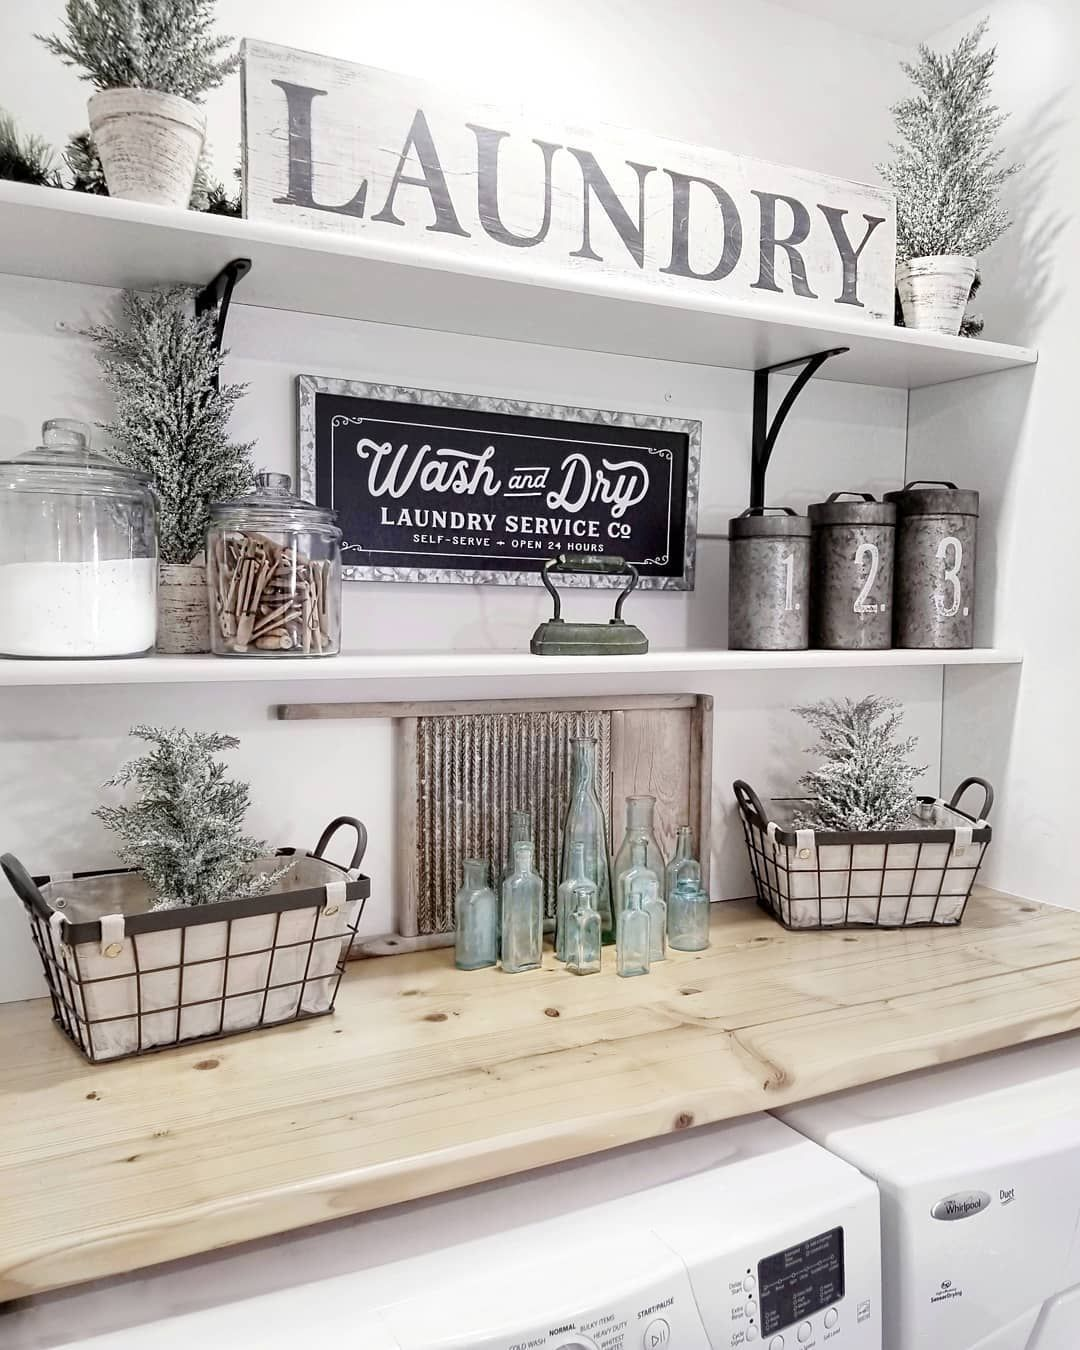 44 Incredible Small Laundry Room Decoration Ideas #smallkitchendecoratingideas